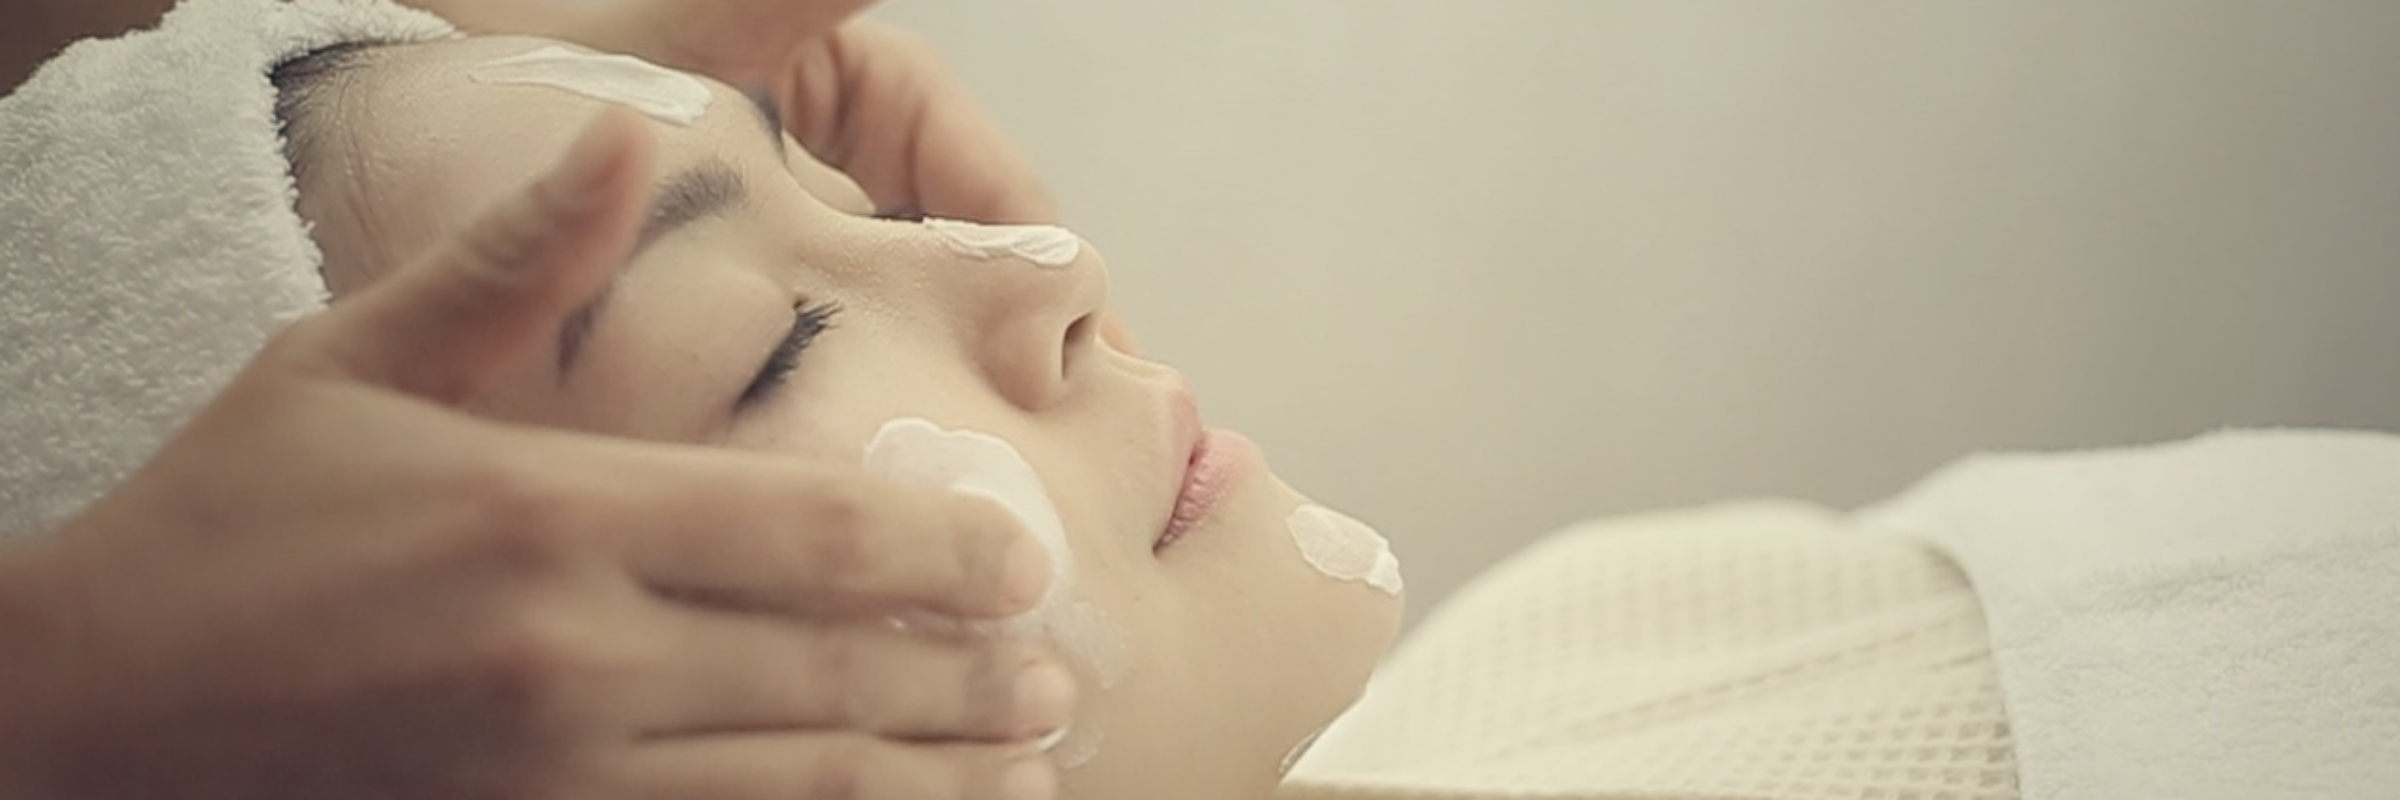 phuket facial treatment